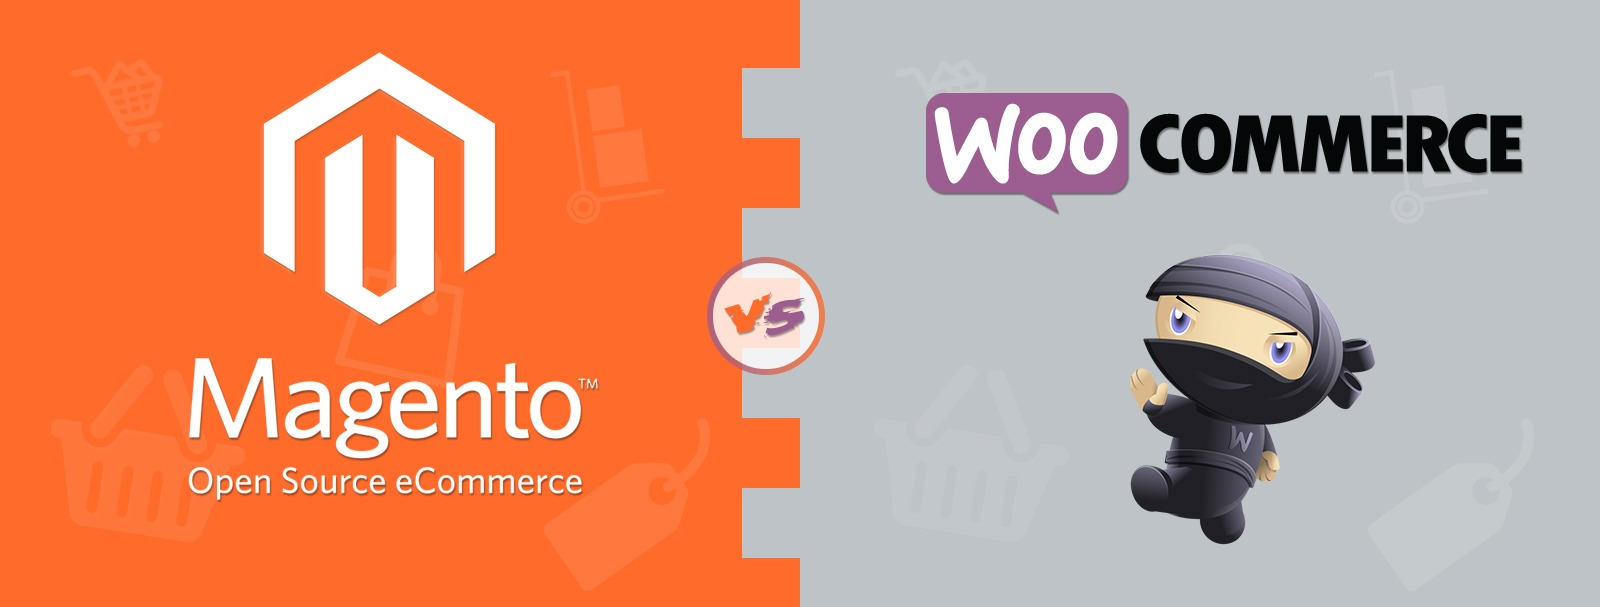 Magento-VS-WooCommerce